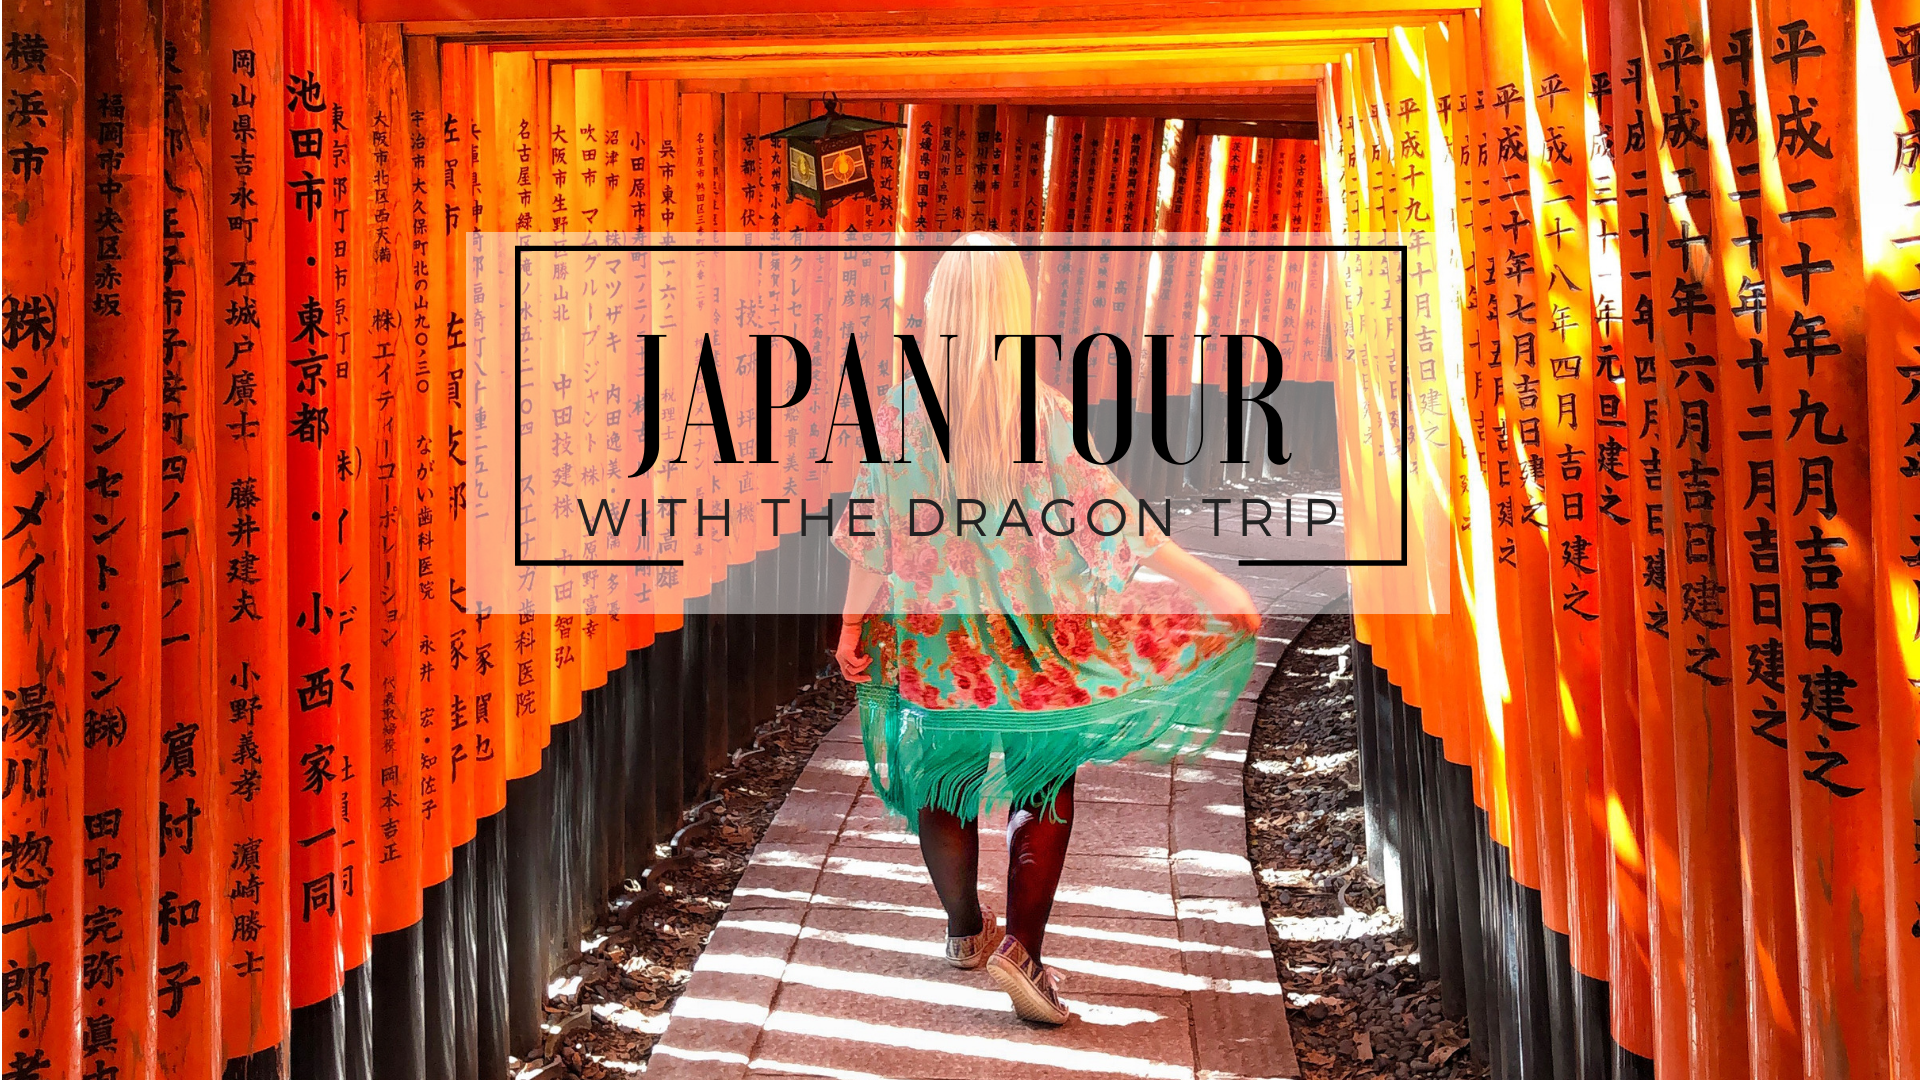 Dragon Trip Japan Tour